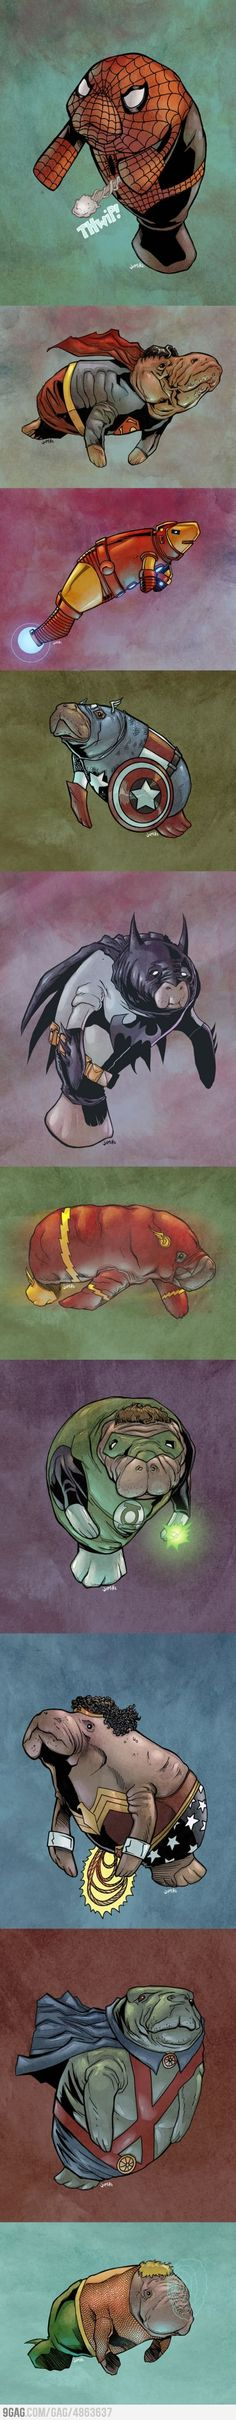 Superheroes as Manatees. No idea why I find this hilarious.